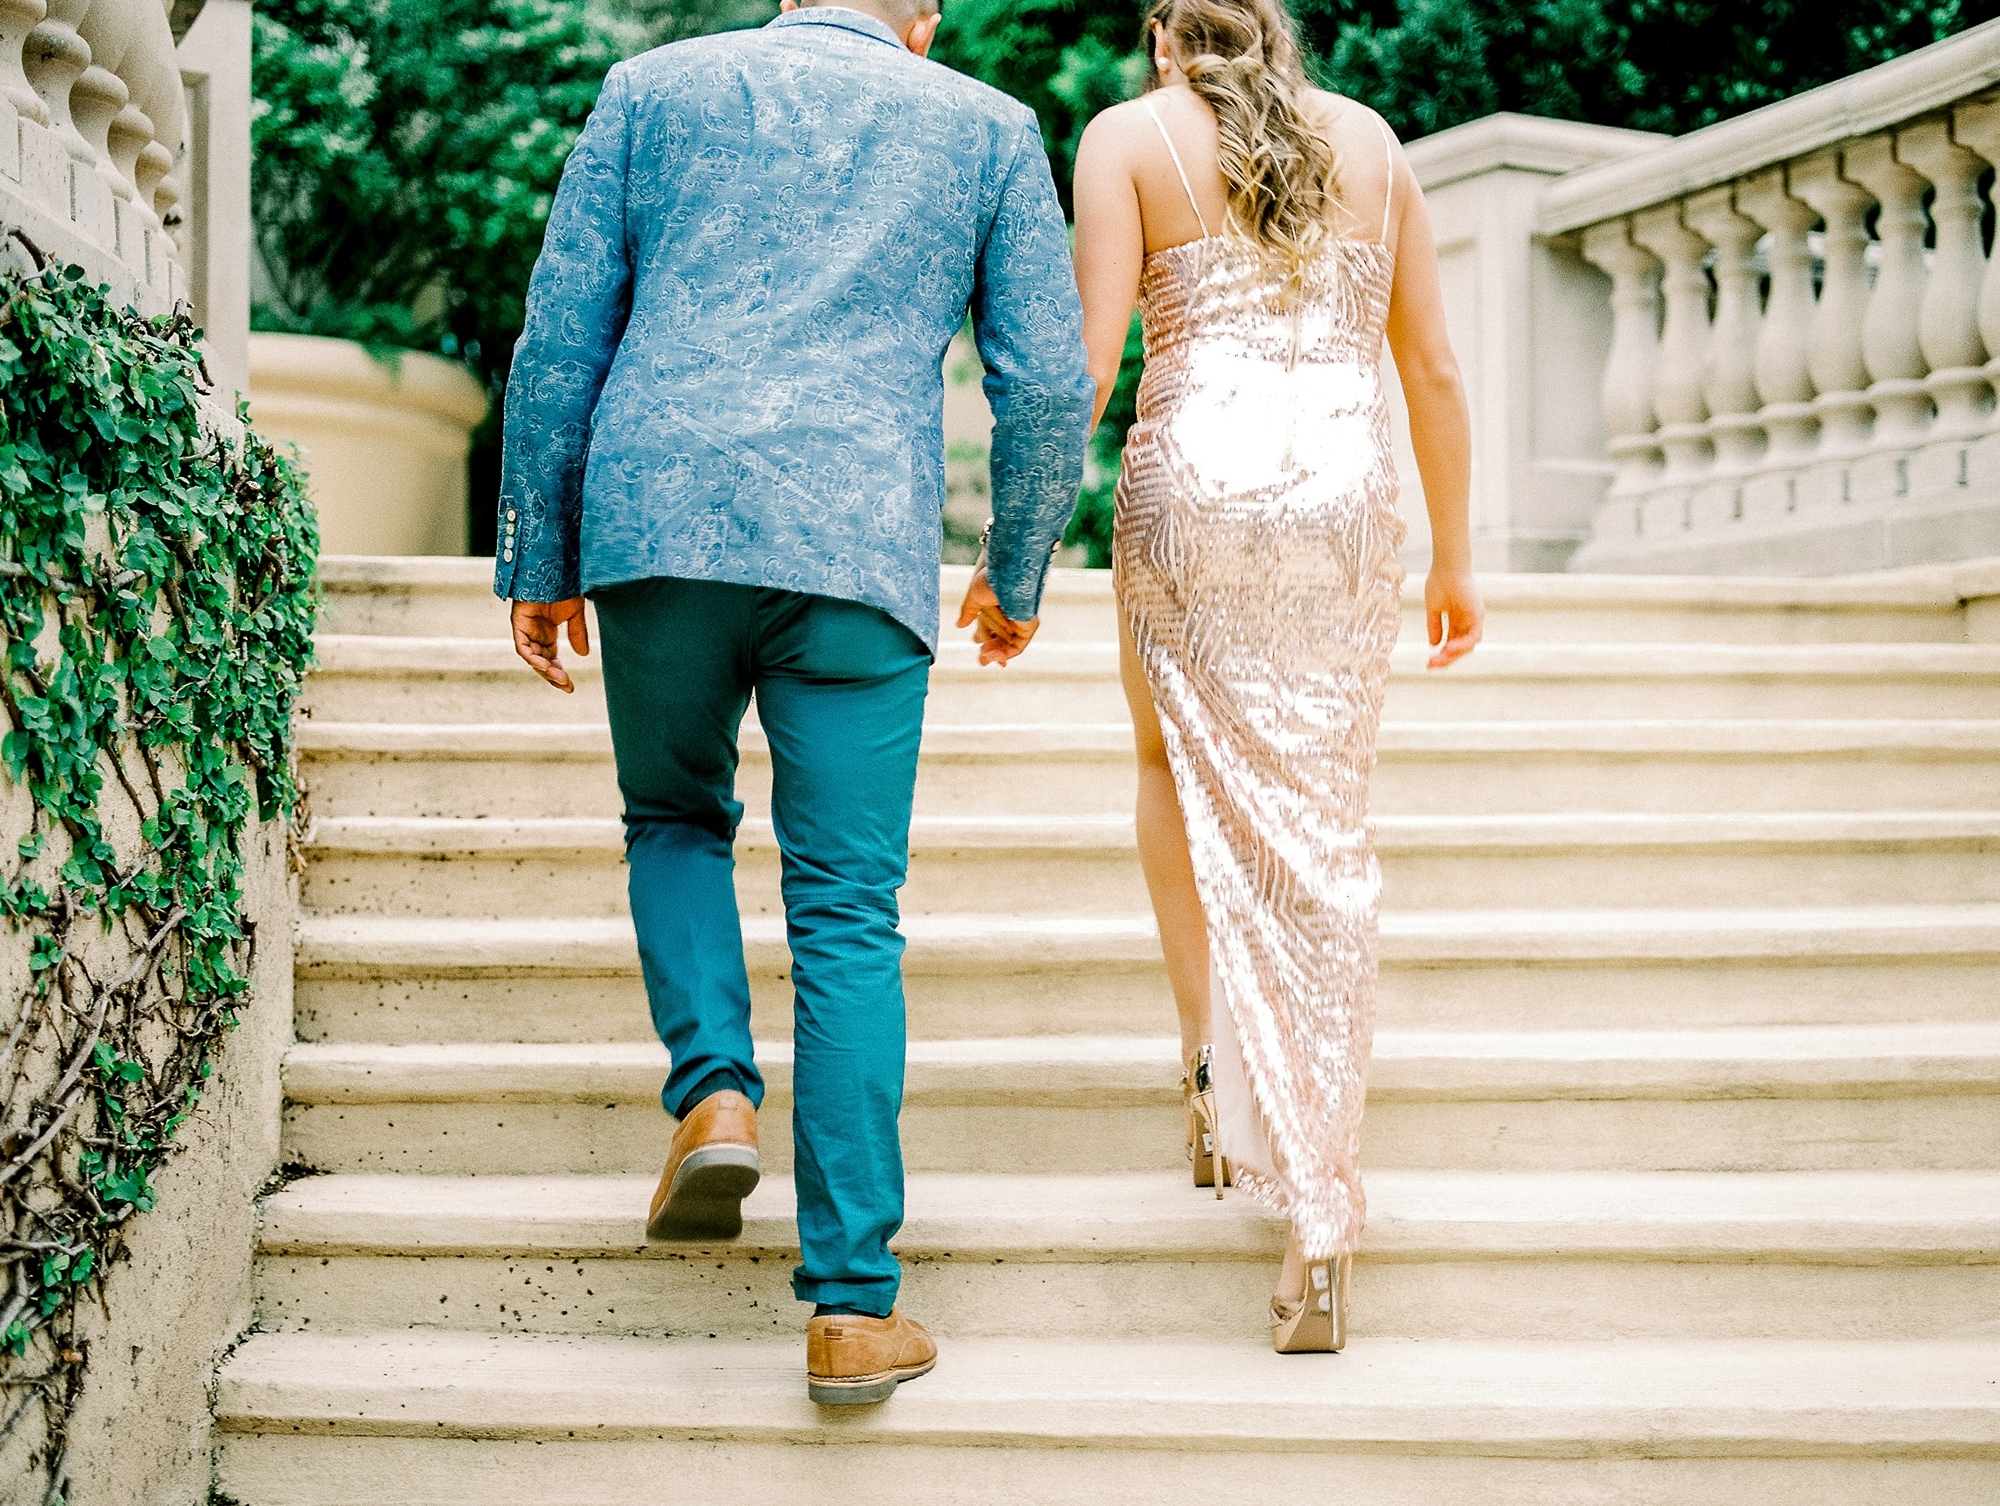 best man,bridal boudoir,bridal session,bridals,bride,brides dress,church,couples,engagement,engagement ring,engagements,father of the bride,film,first look,flower girl,fuji,getting married,groom,groom. wedding cake,honeymoon,i do,just married,maid of hour,mastin,mississippi wedding photographer,mother of the groom,photographer,reception,ring,ring bearer,the knot,wedding,wedding band,wedding dress,wedding photographer,wedding photography,wedding venue,weddings,